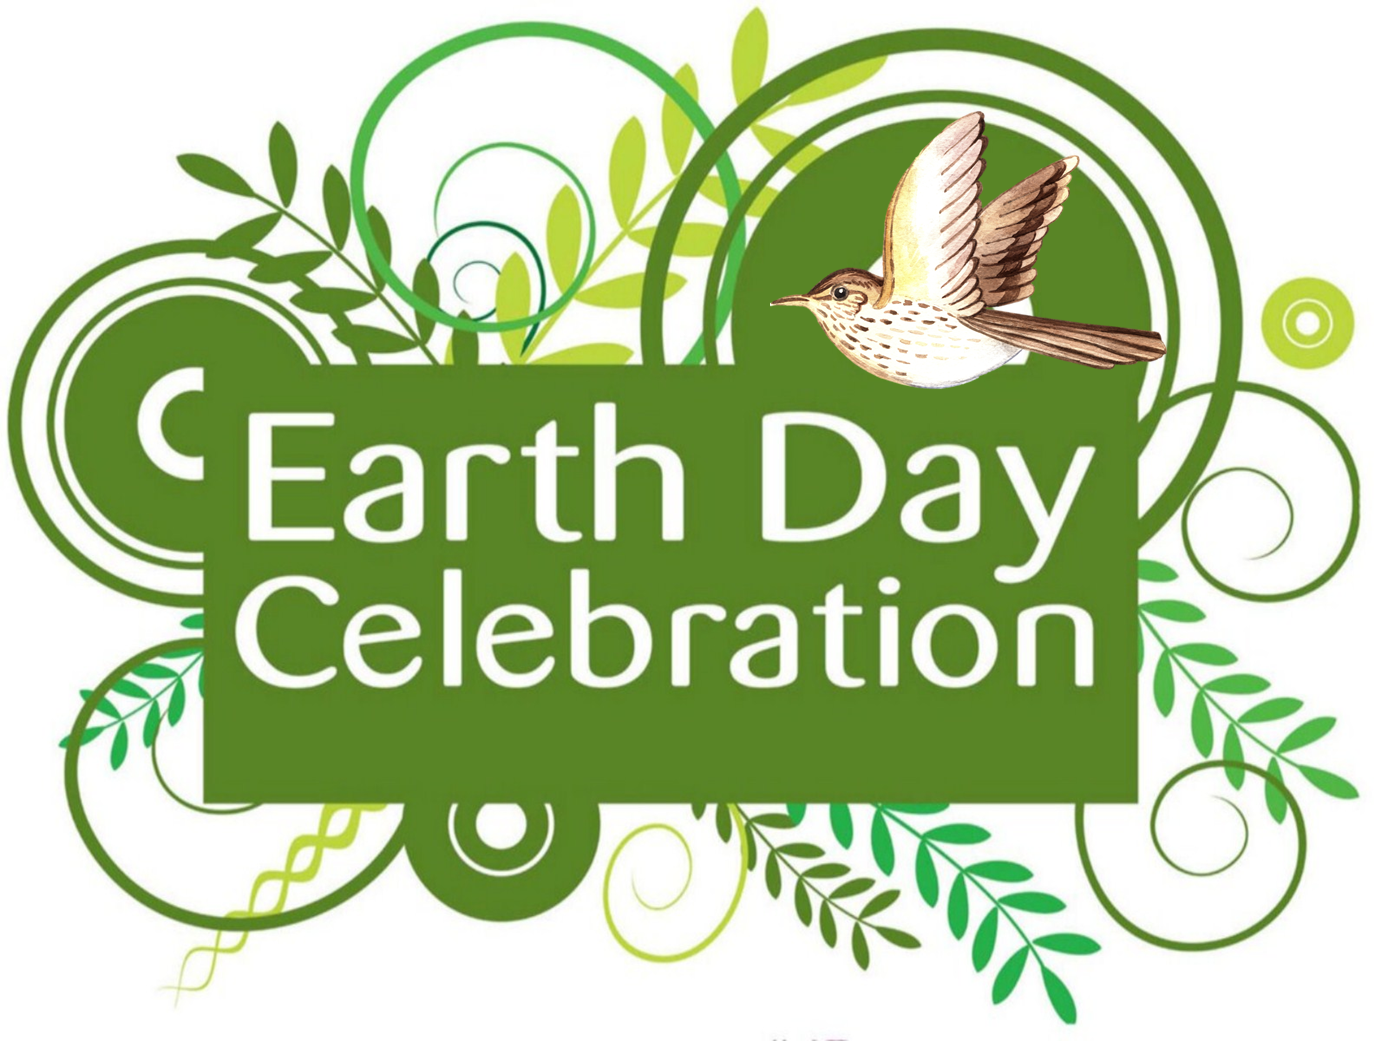 Earth-Day-Celebration